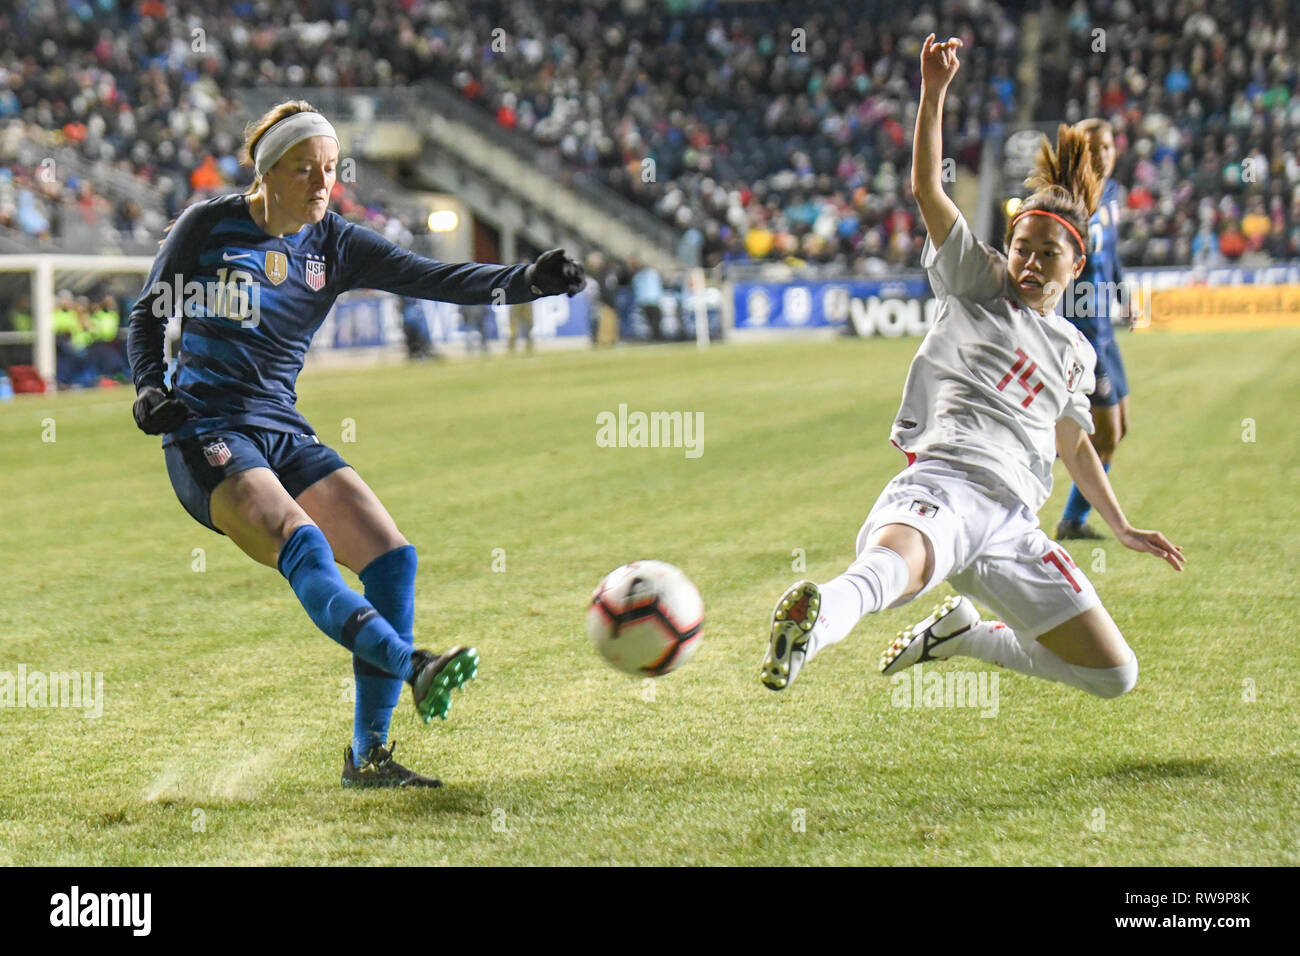 SheBelieves Cup featuring the United States women's national team versus the Brazil women's national team. Professional women footballers - Stock Image